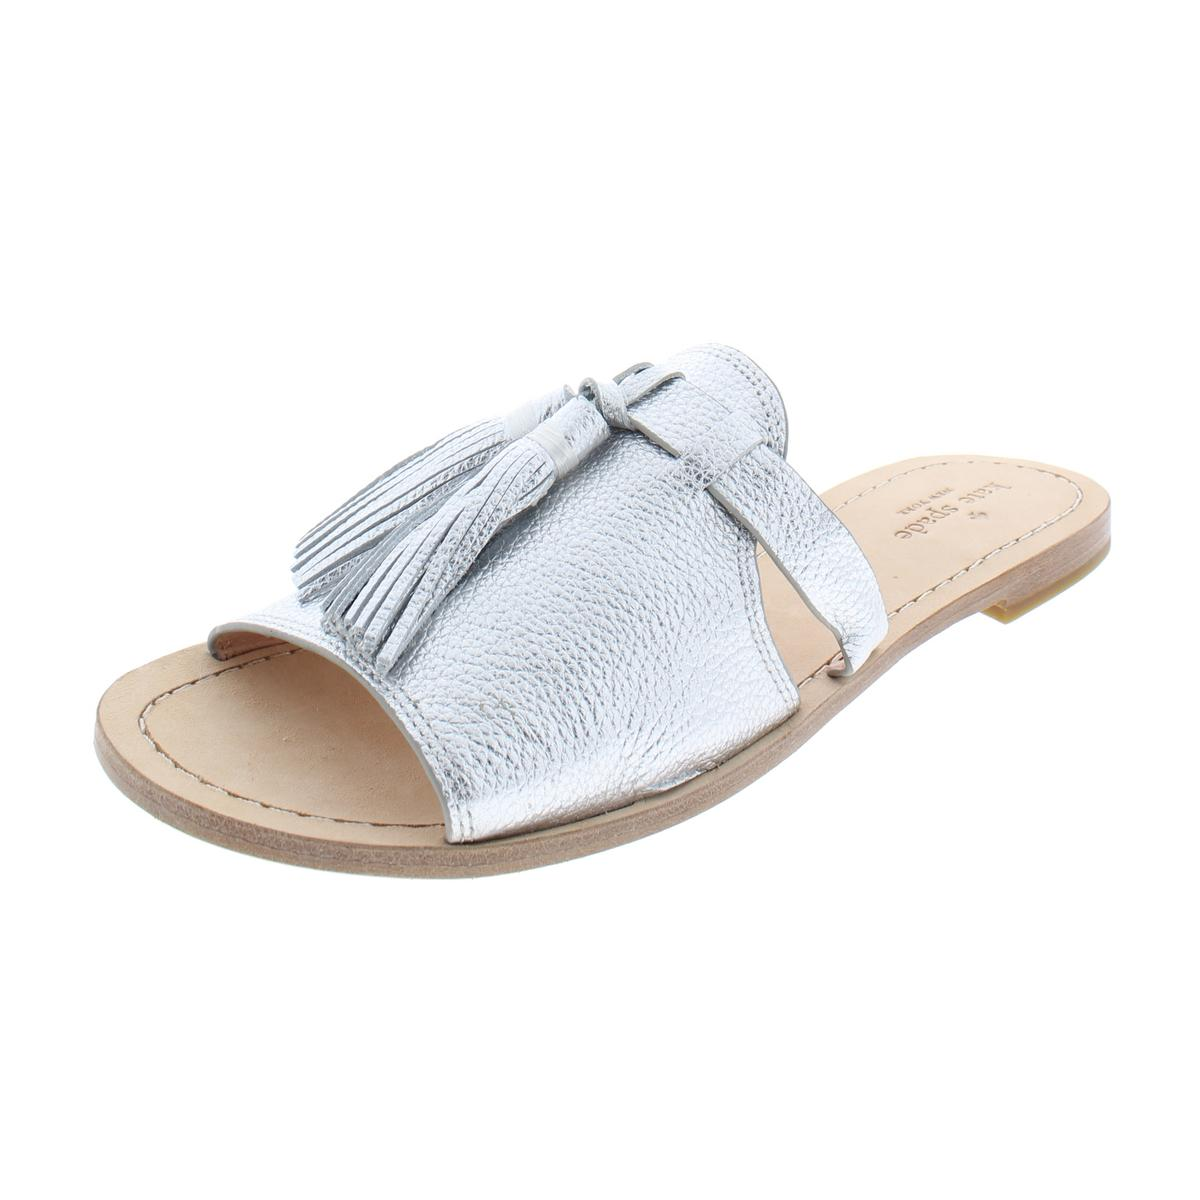 fa4aa9807bc2 Kate Spade Womens Coby Silver Metallic Slides Flat Sandals Shoes 6 ...